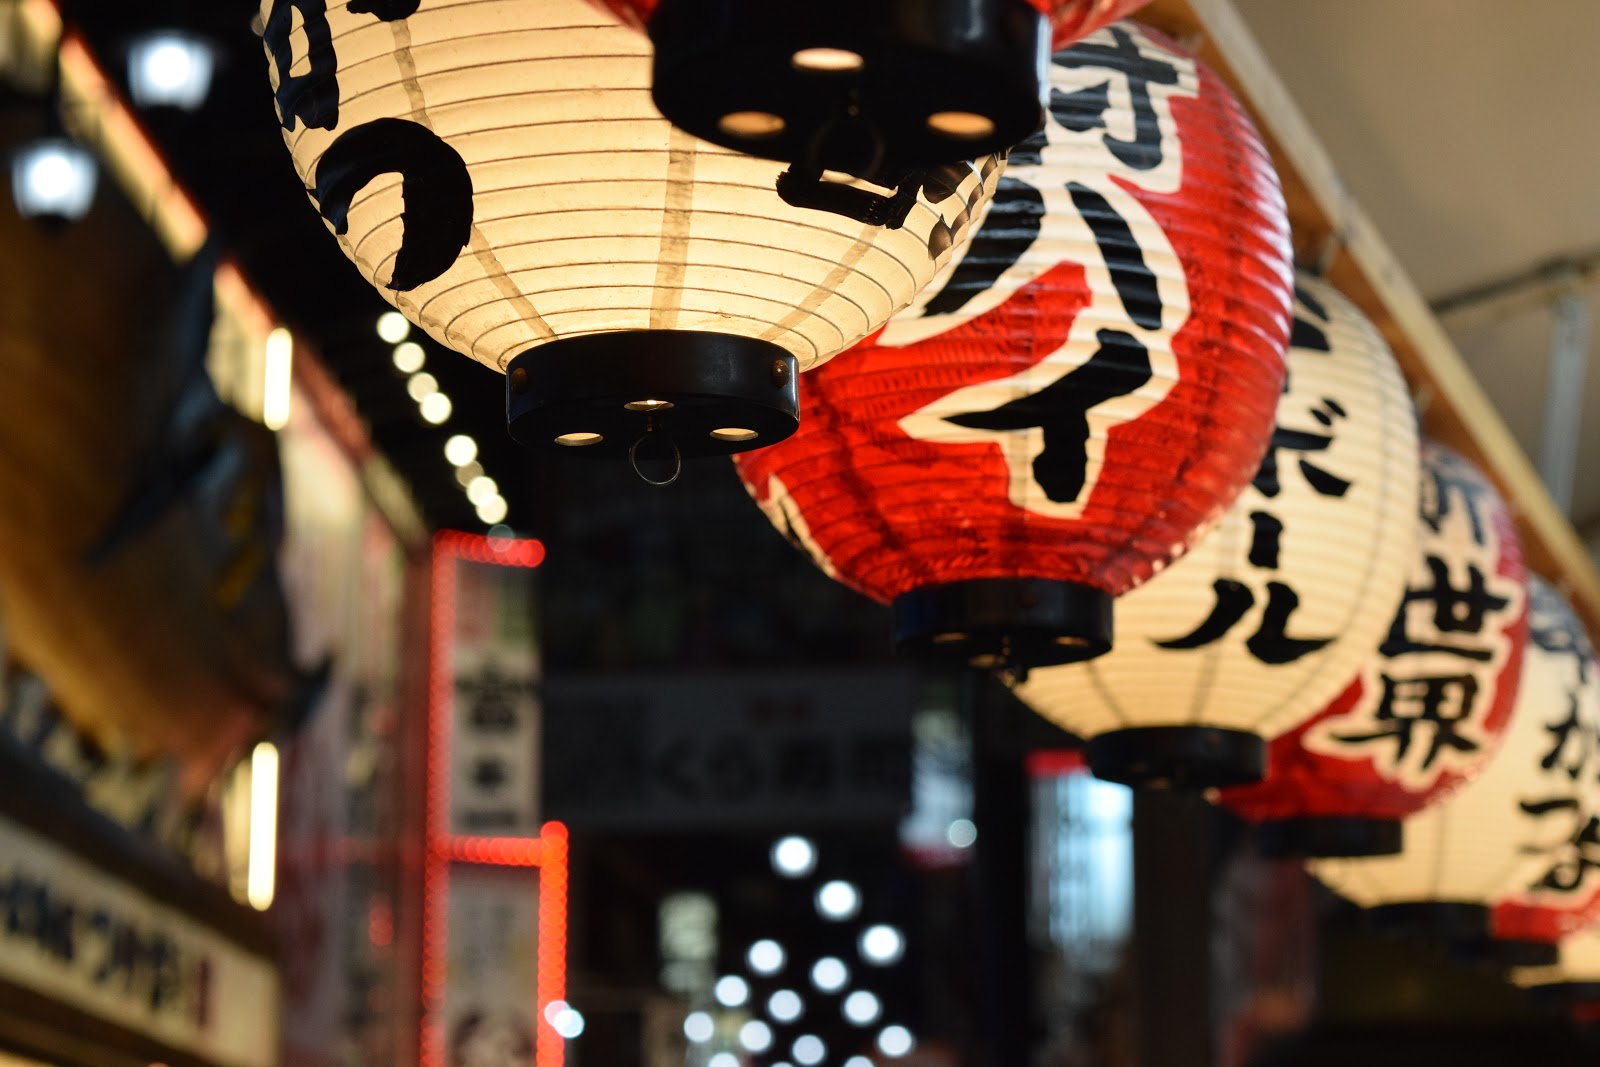 lanterns in Shinsekai, Osaka